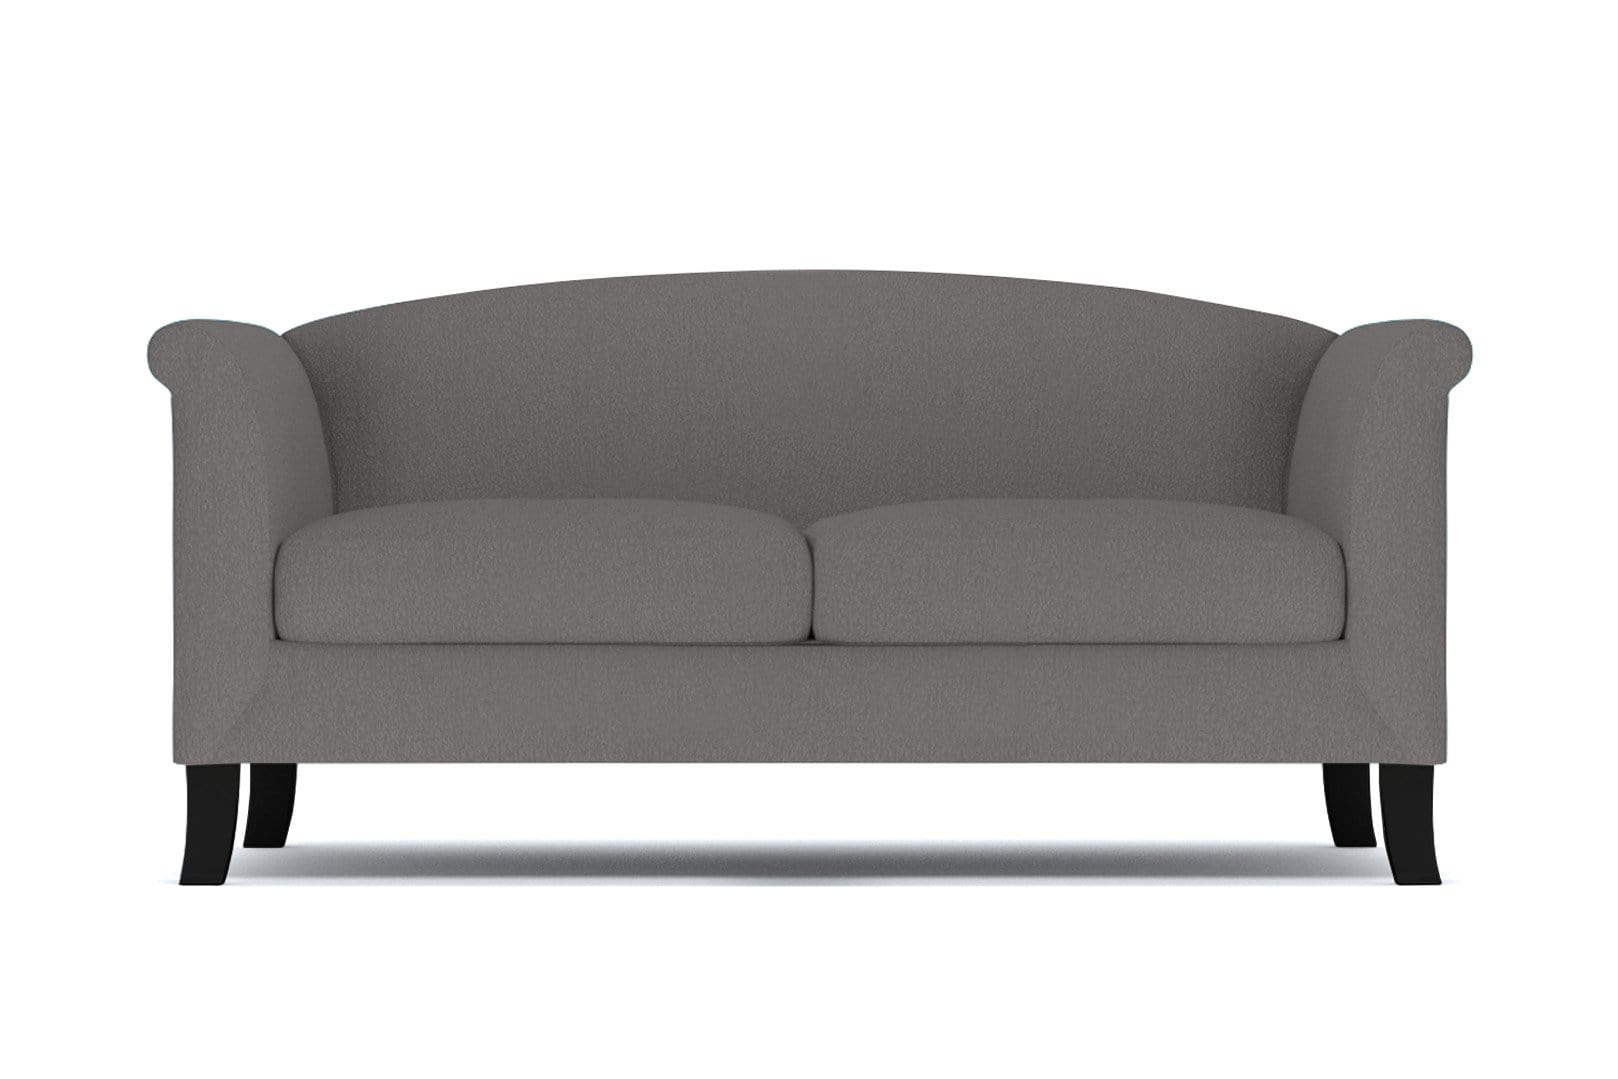 Albright_Apartment_Size_Sofa__Grey___Small_Space_Modern_Couch_Made_in_the_USA__Sold_by_Apt2B